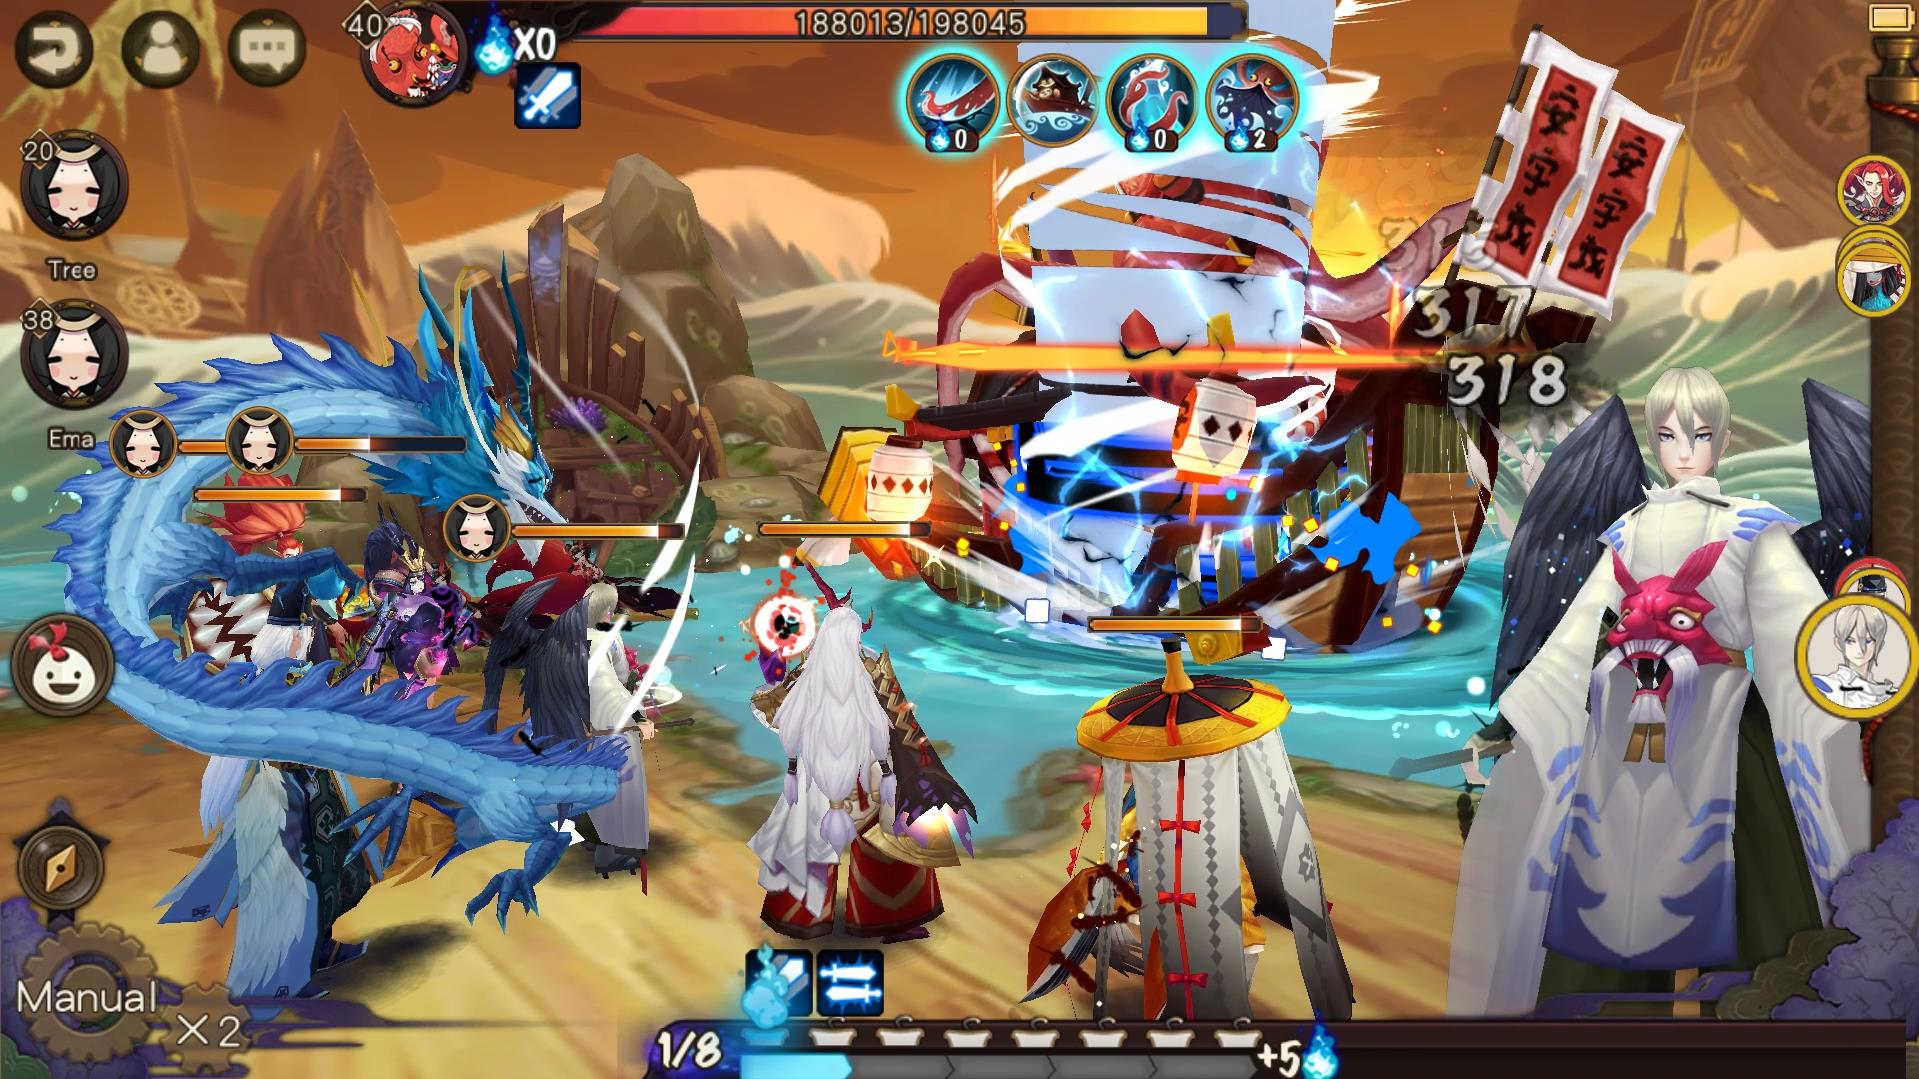 Embark on a new kind of RPG adventure in Onmyoji